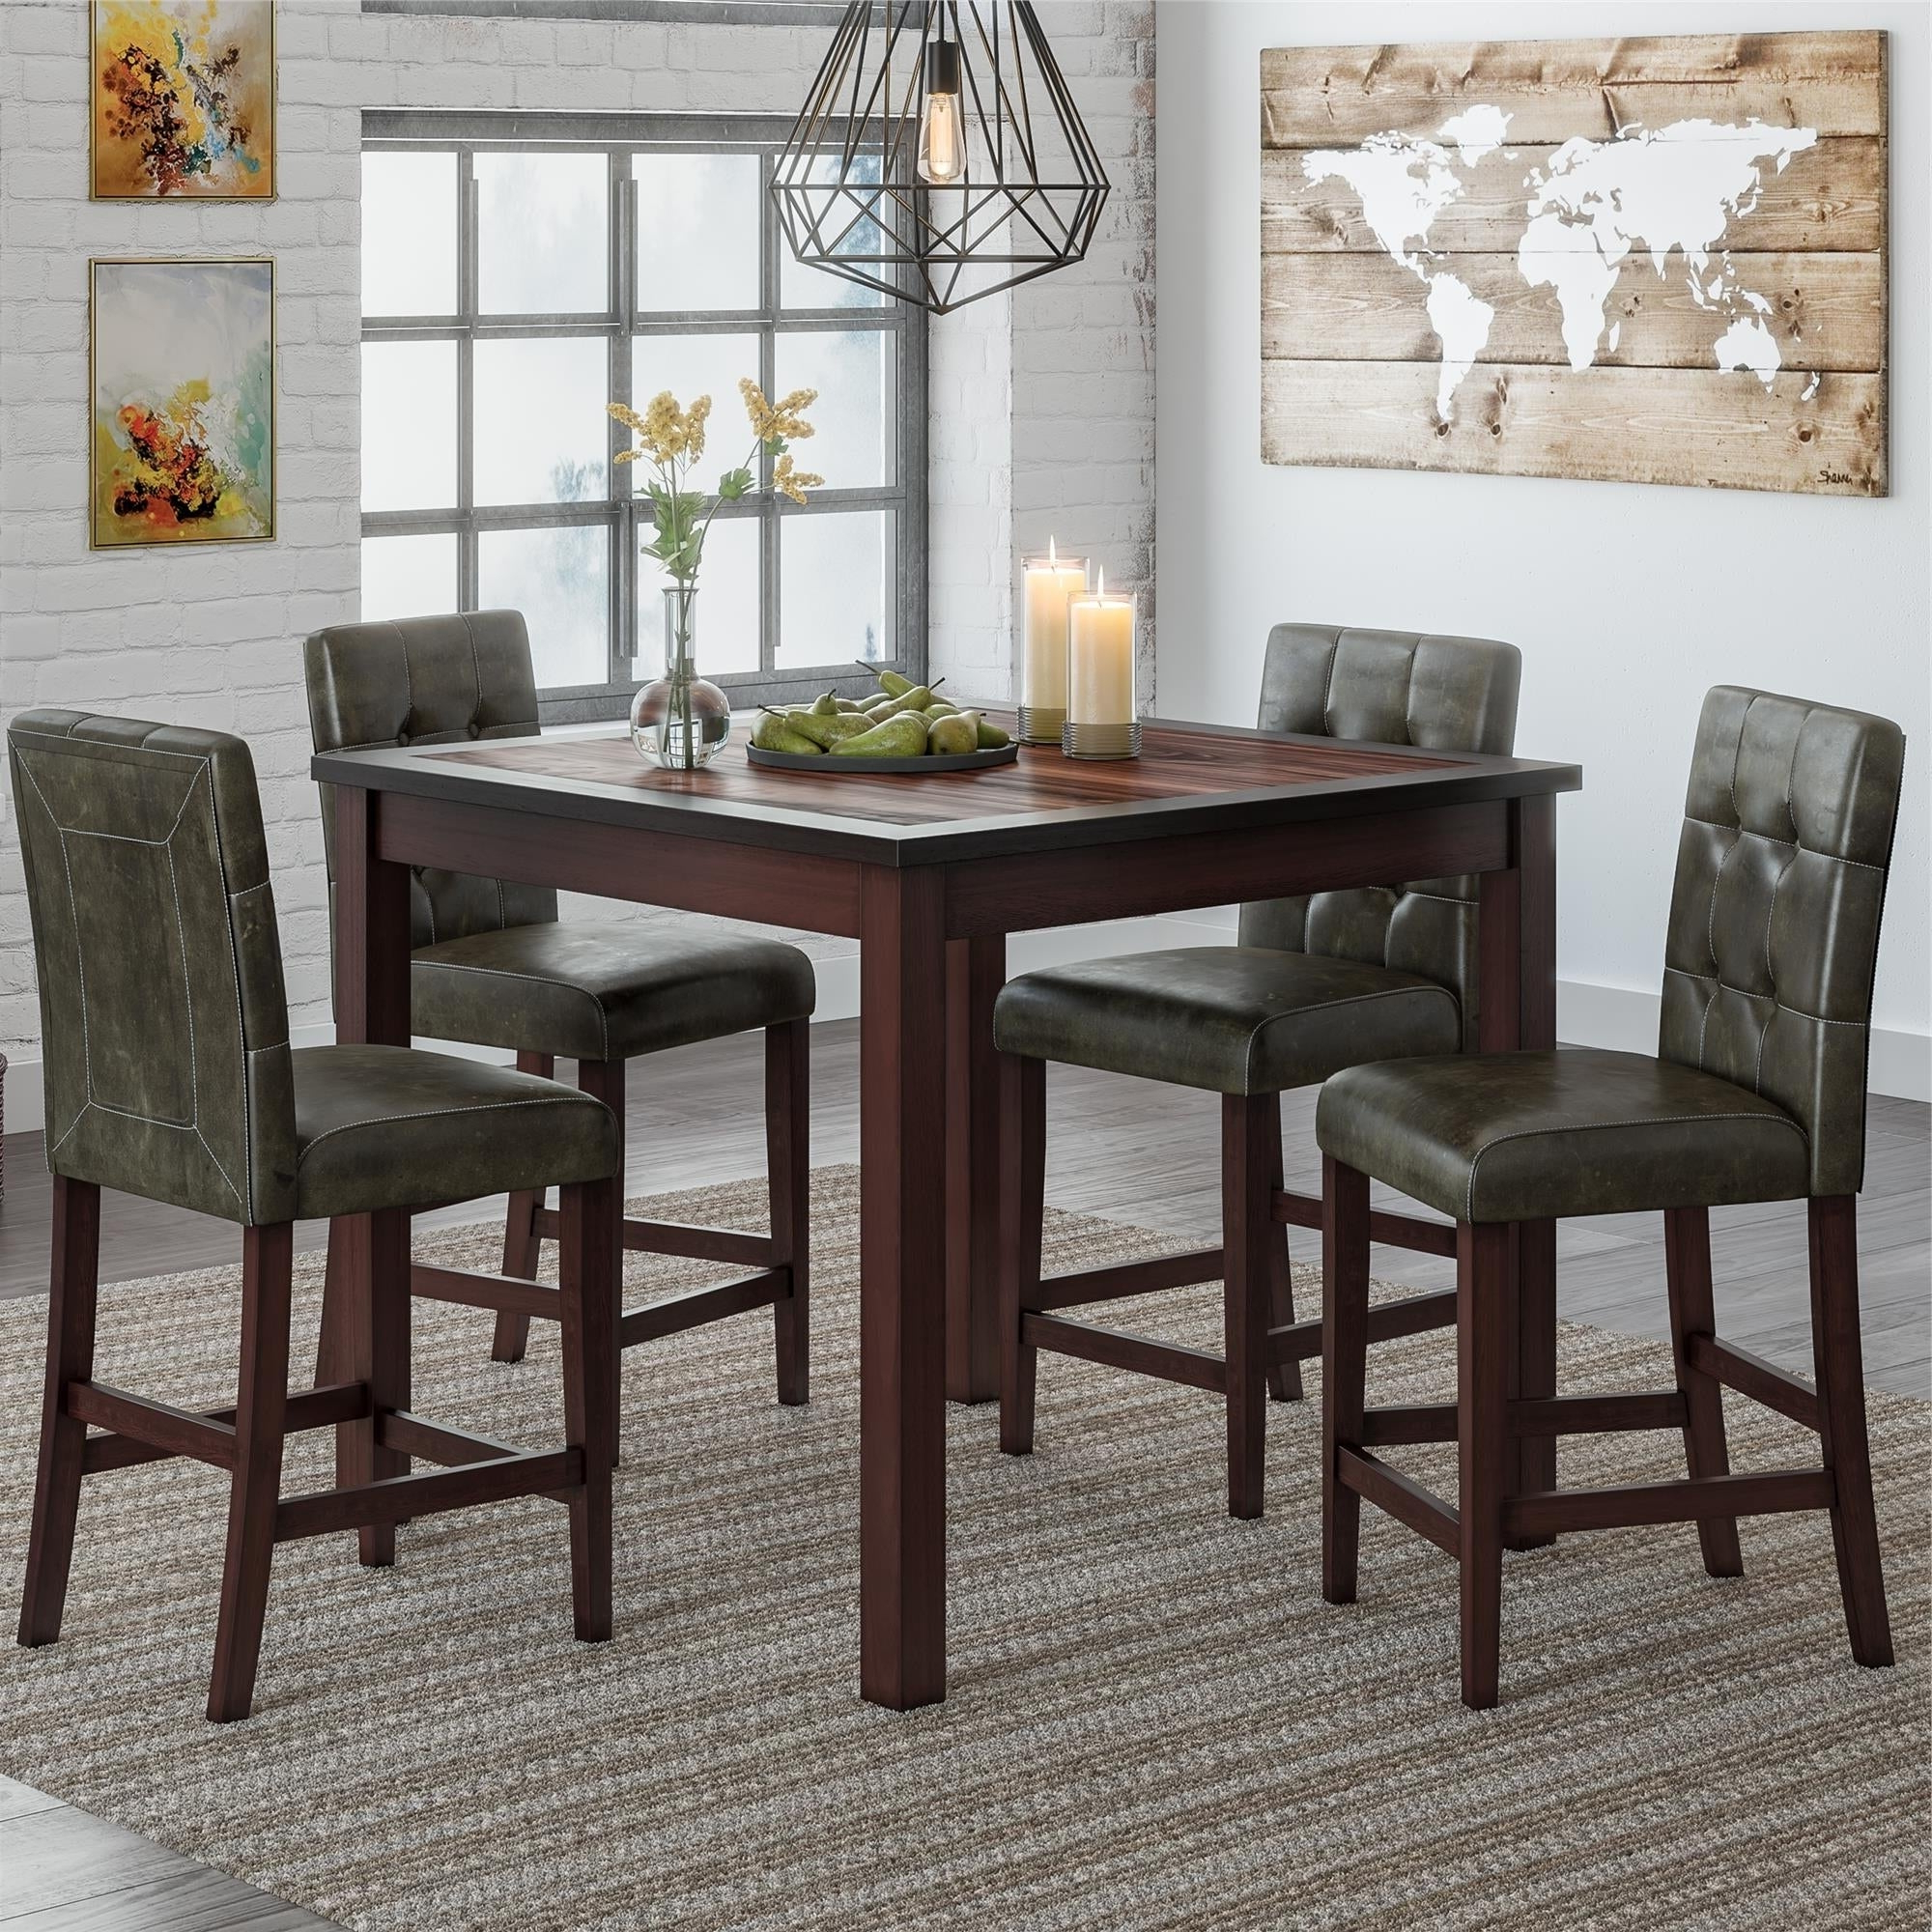 Bettencourt 3 Piece Counter Height Dining Sets With Regard To Well Known Gracewood Hollow Betancourt Espresso 5 Piece Counter Height Dining Set (Gallery 18 of 20)